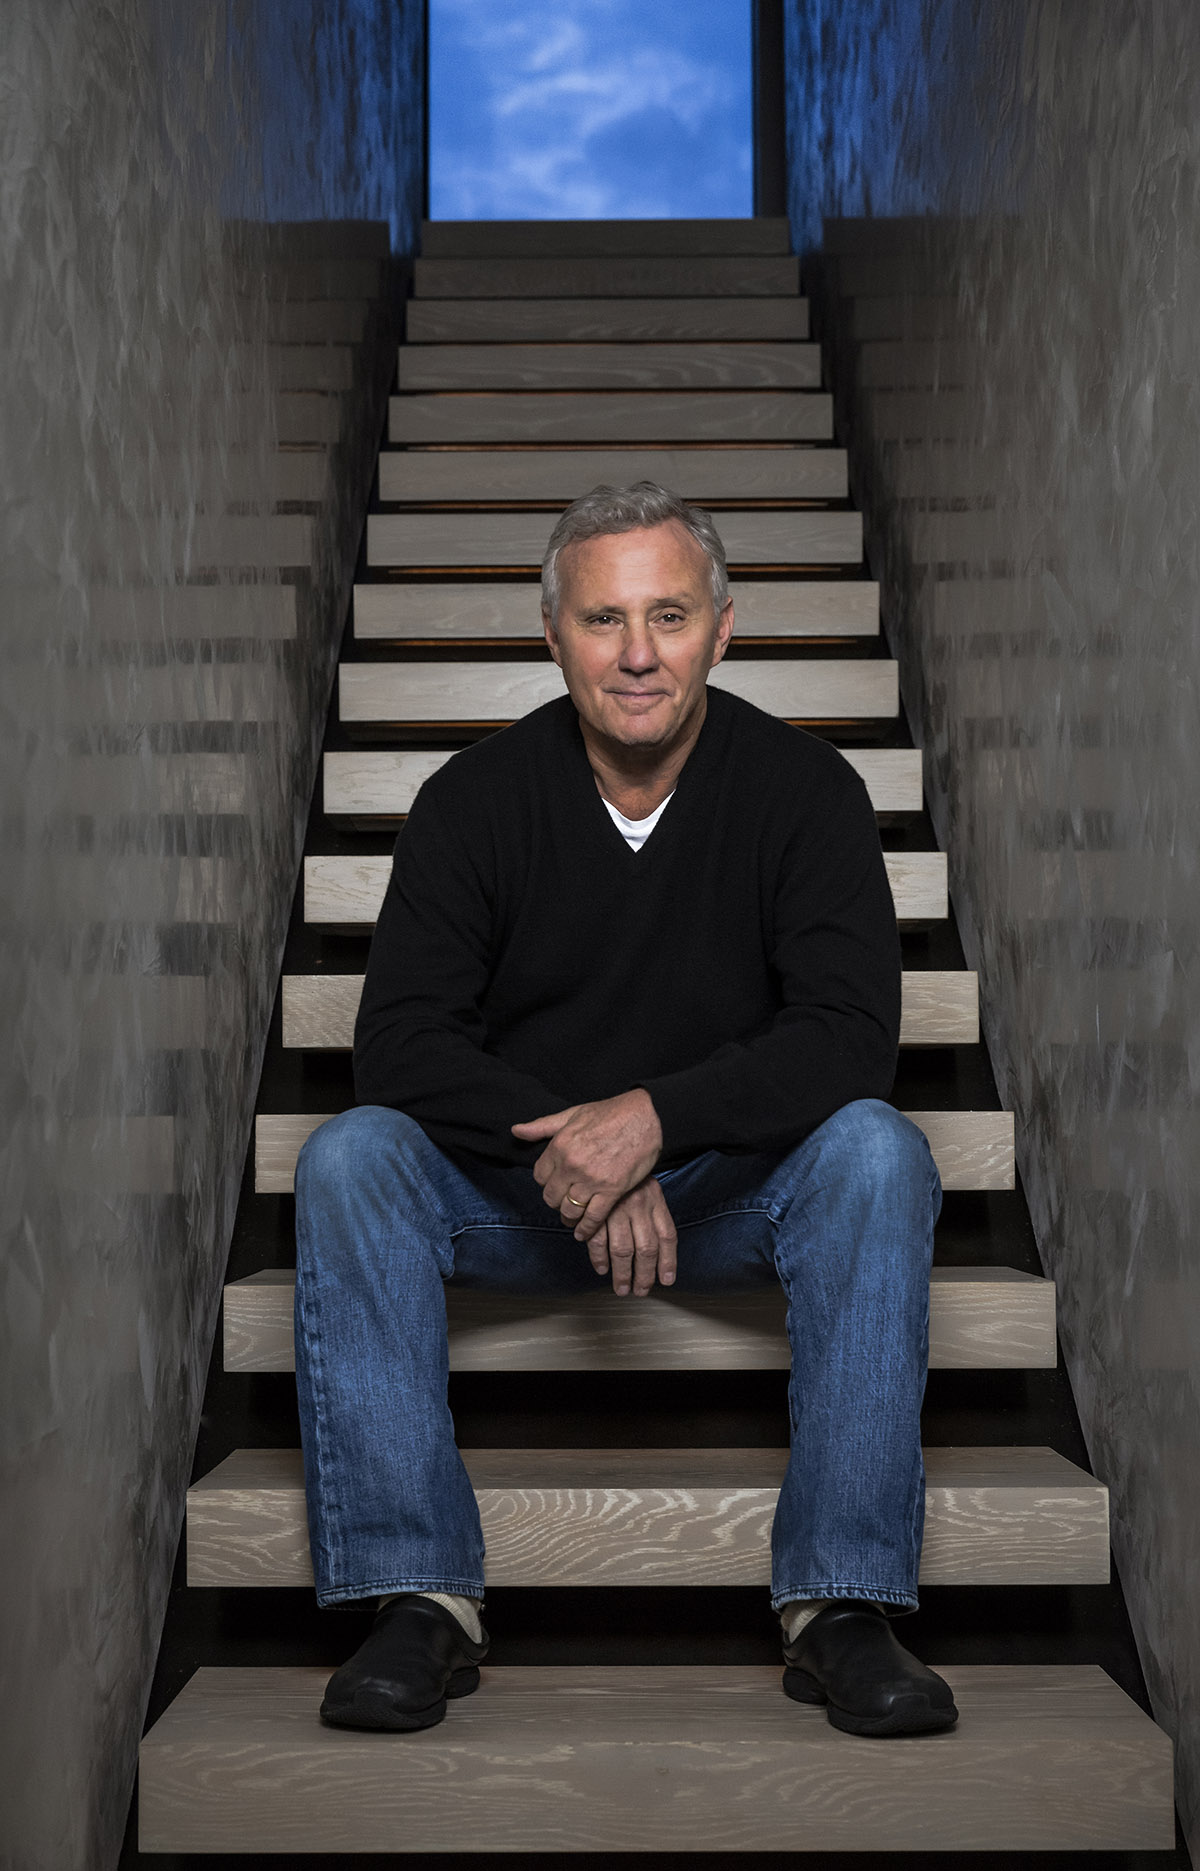 American Hotelier and Real Estate Developer Ian Schrager photographed at his home on the Lower East Side in New York. Chad Batka for The New York Times.